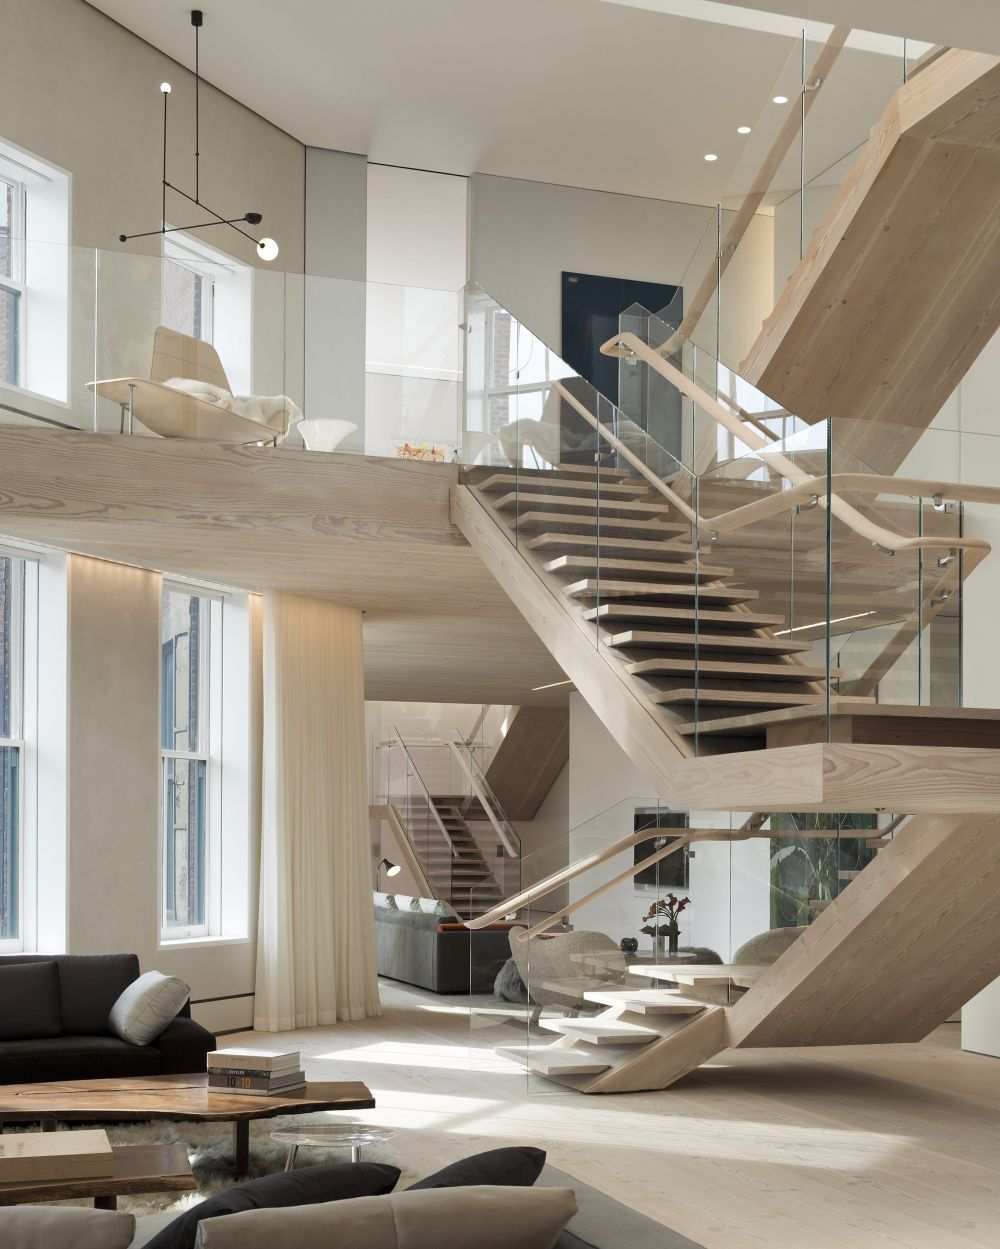 Stunning Staircase And Elevator Design Ideas: Staircase Designs That Bring Out The Beauty In Every Home